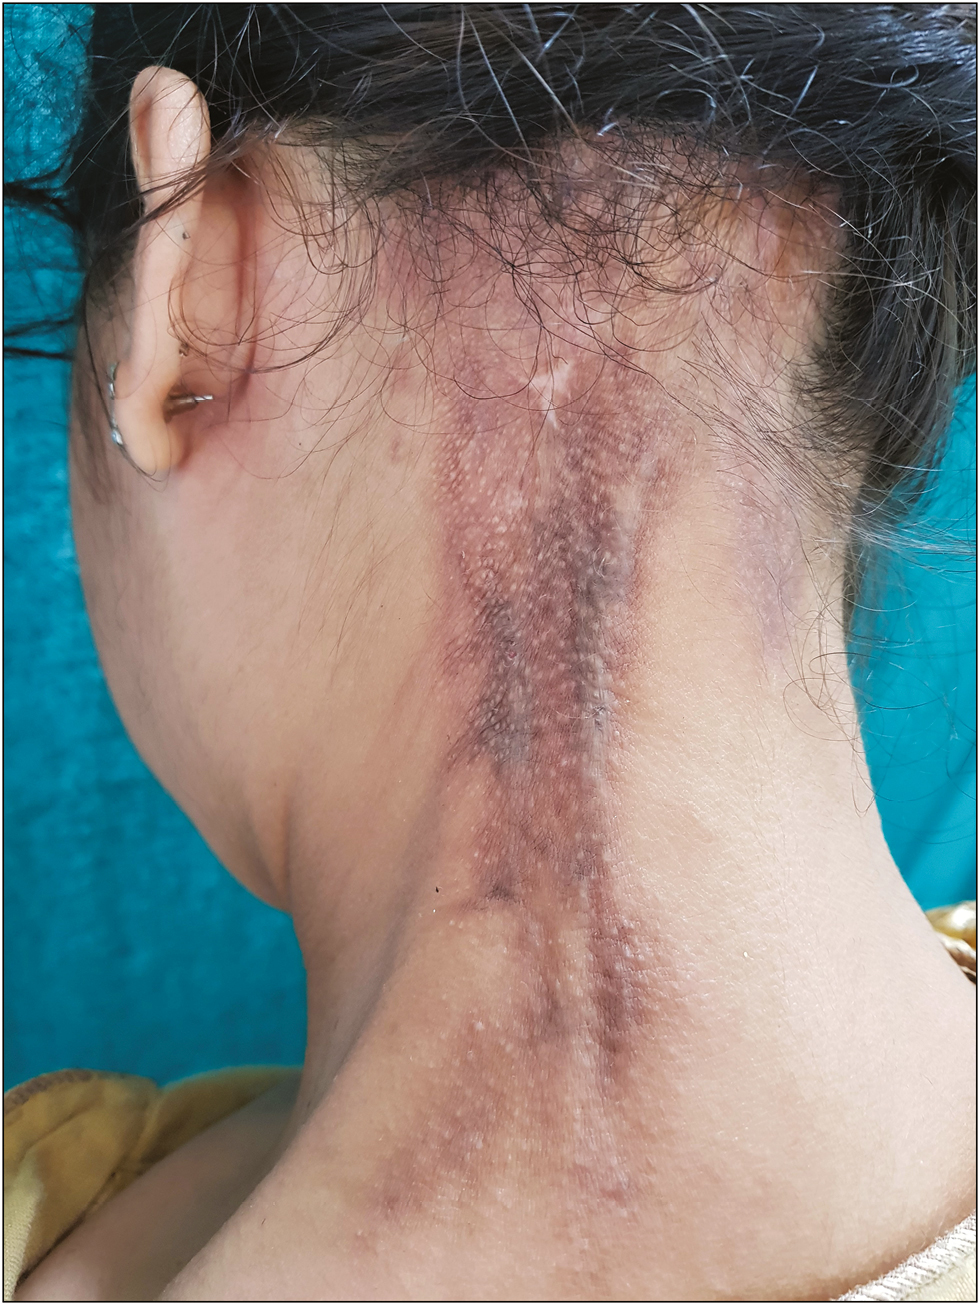 Figure 2: Lesion after 1 month of treatment showing softening of the plaque as well as the cords